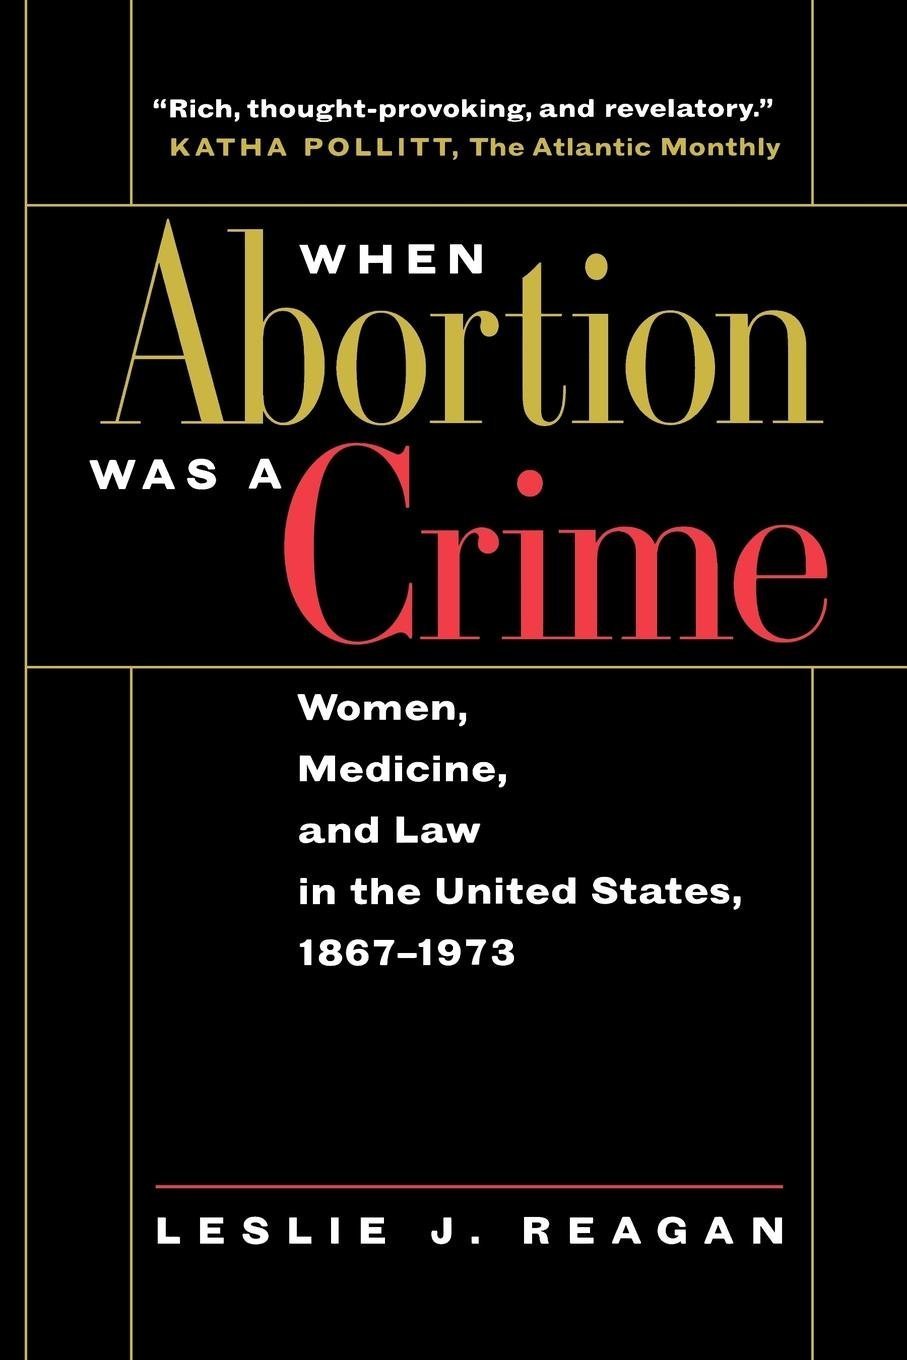 modern medicine for abortion One of the greatest public health achievements of modern medicine was the  legalization of abortion, which resulted in at least a 90% reduction.